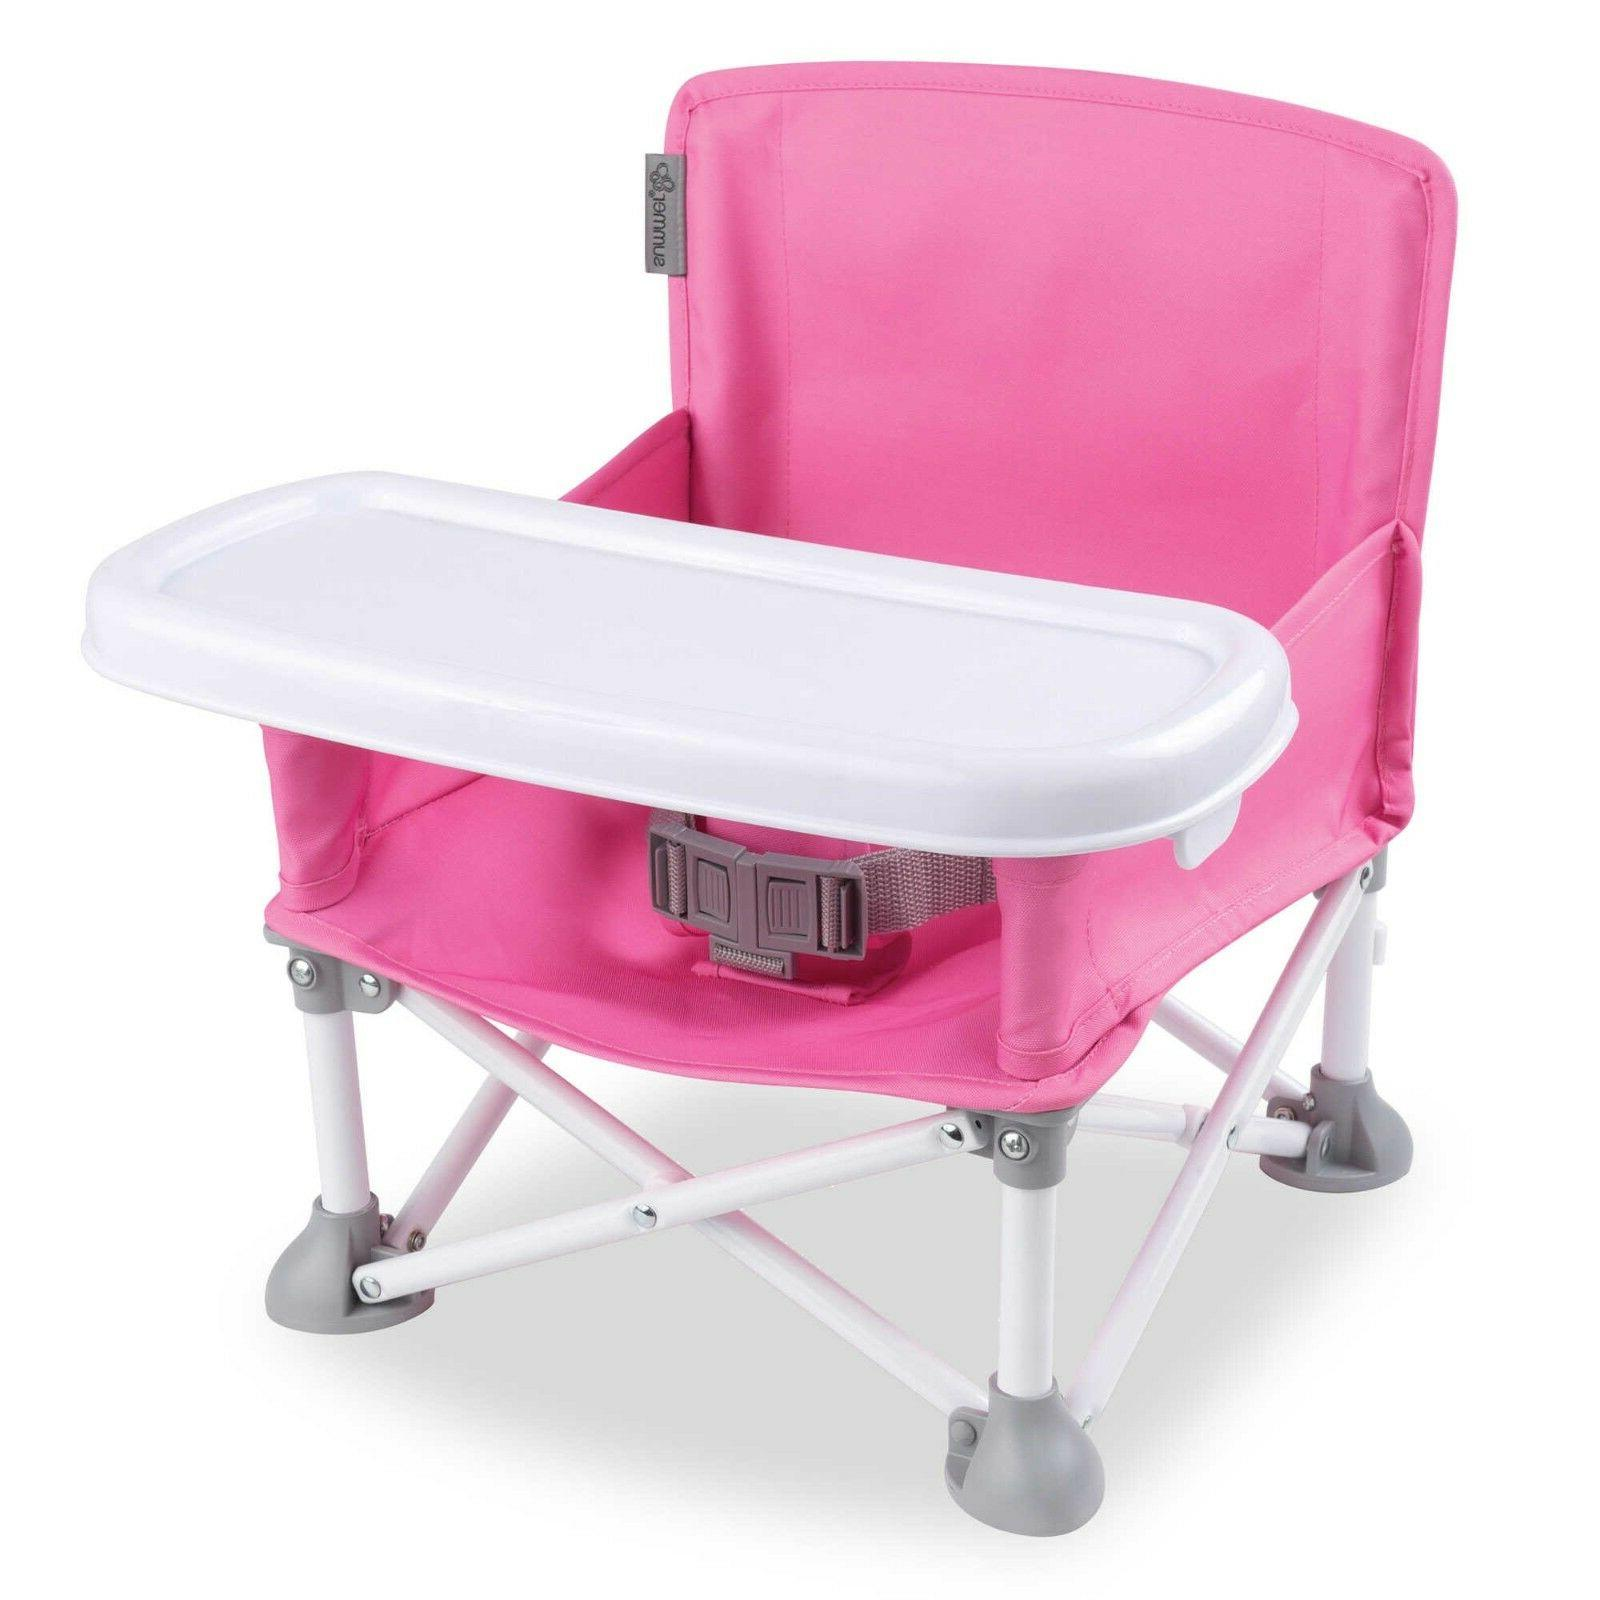 Summer Infant® Pop N' Sit Portable Booster in Pink removabl